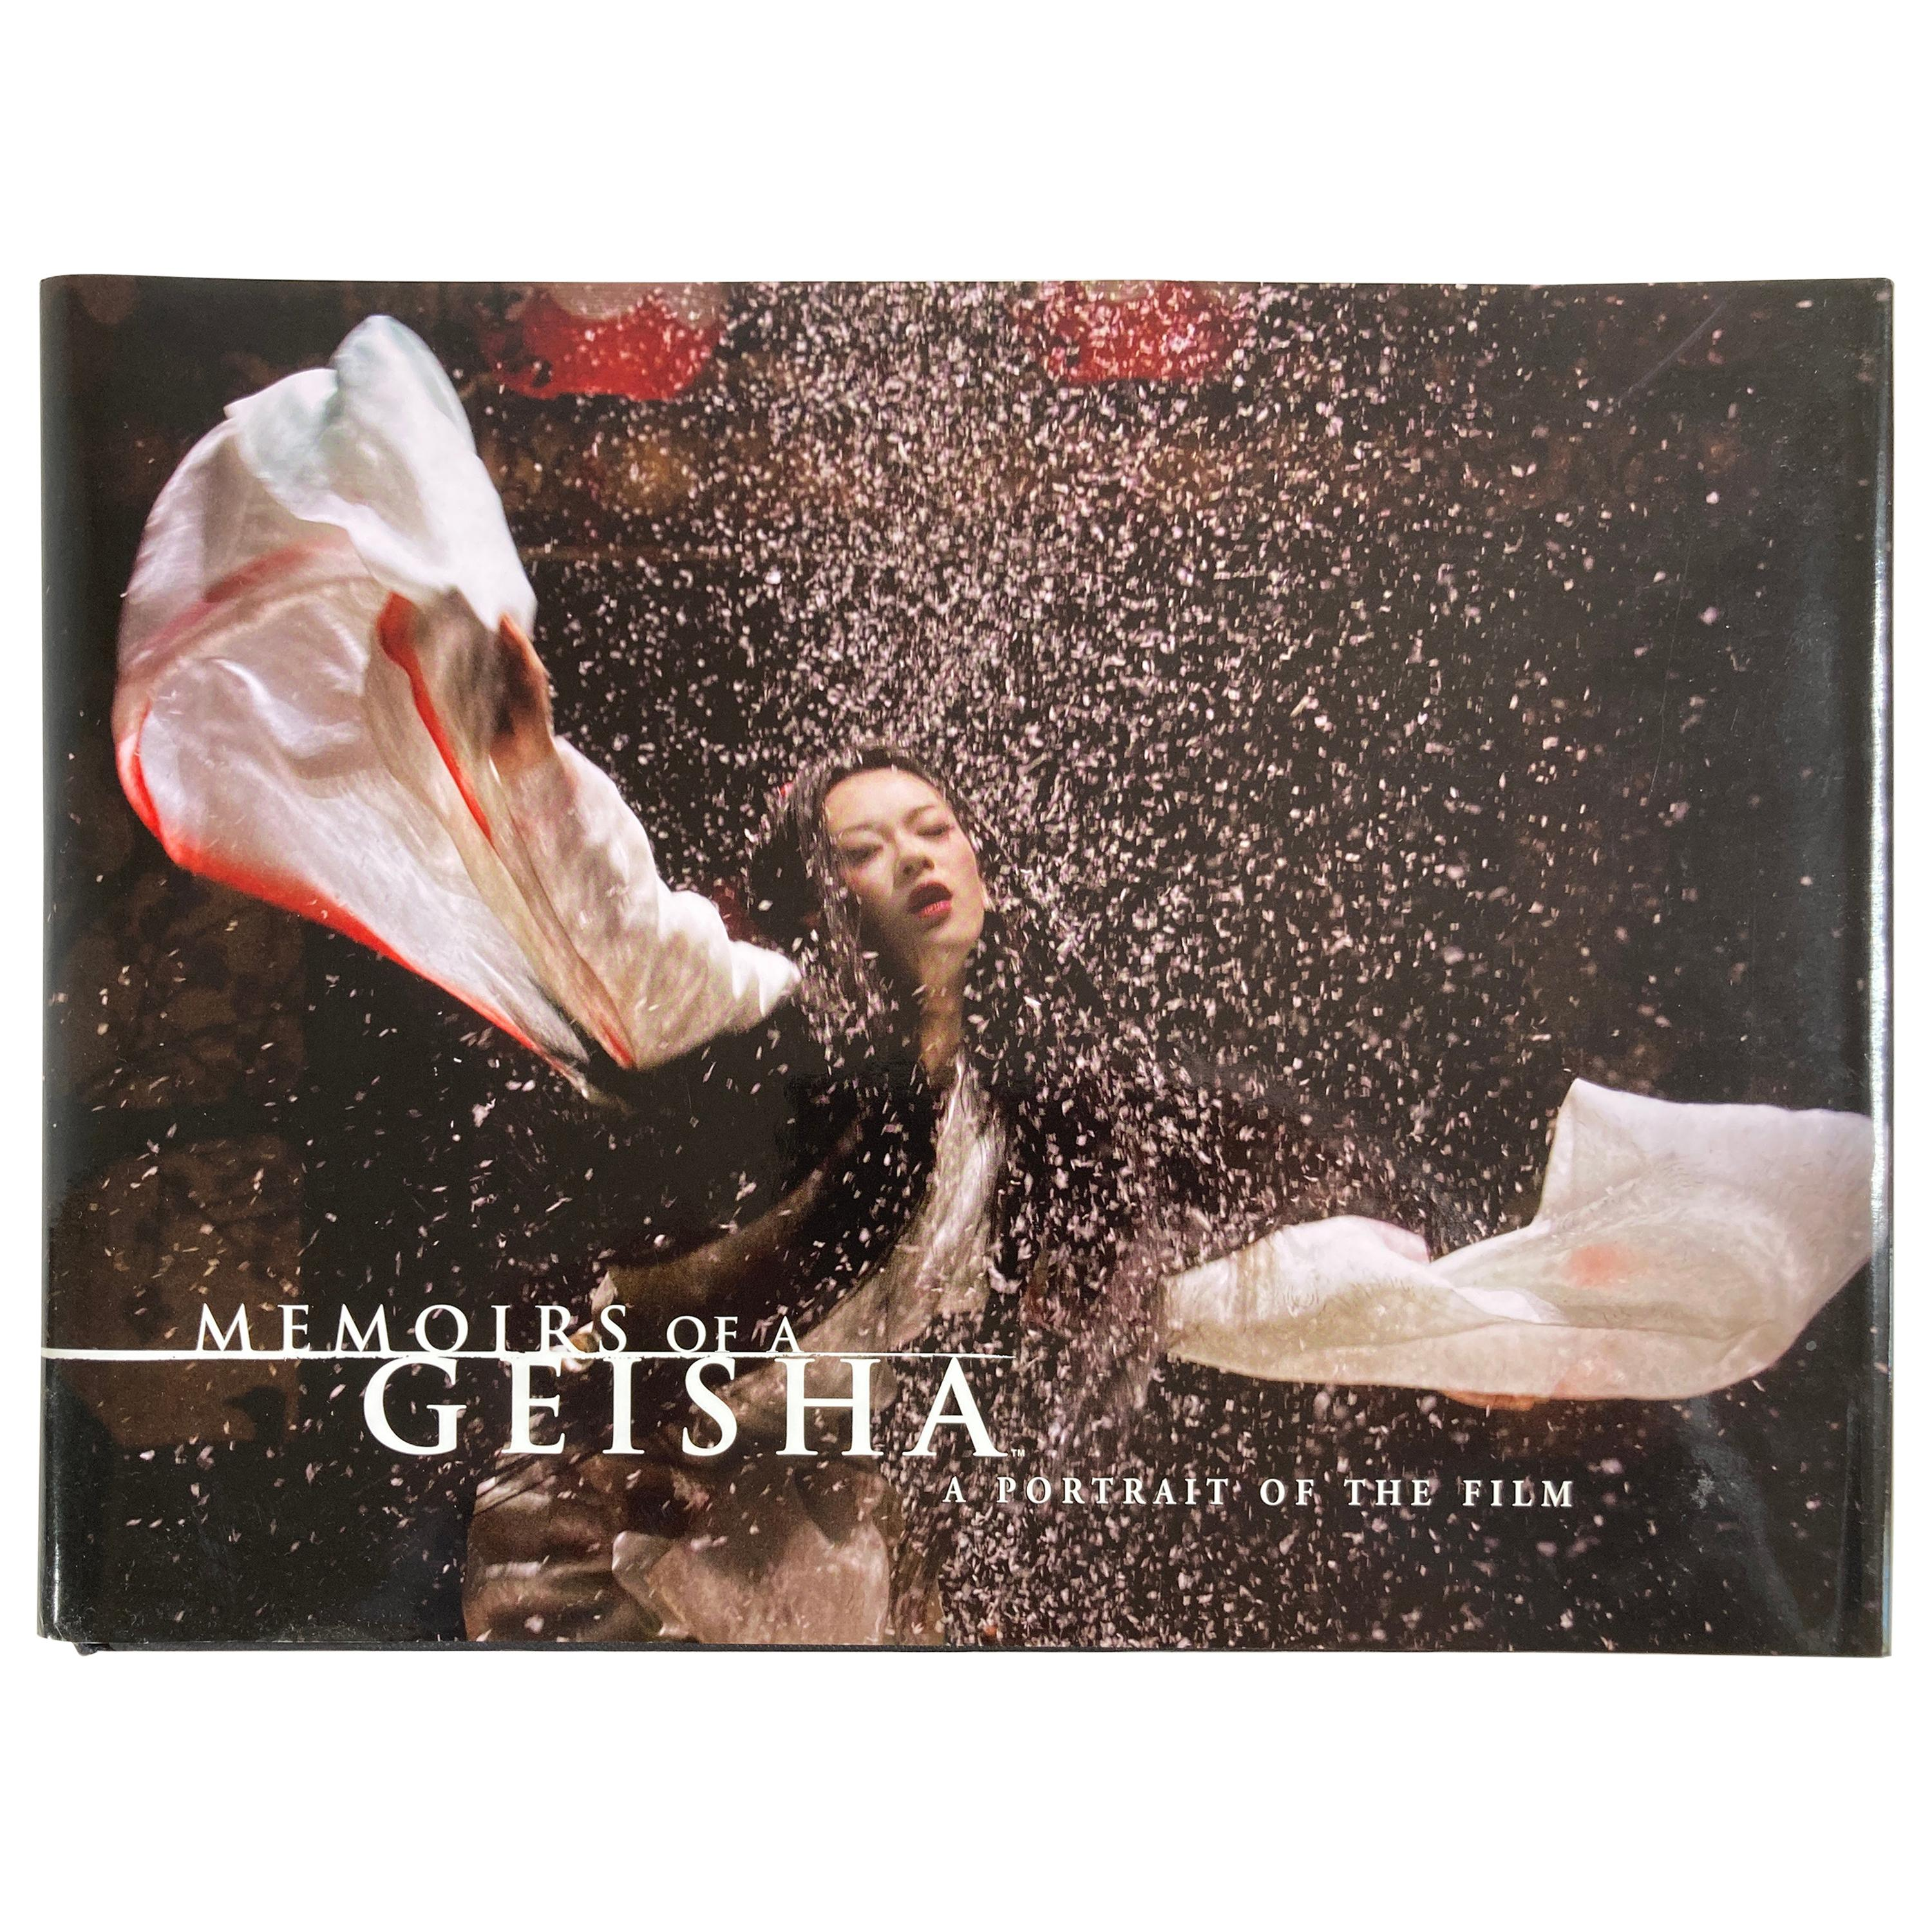 Memoirs of a Geisha A Portrait of the Film By Peggy Mulloy 2005 Hardcover Book